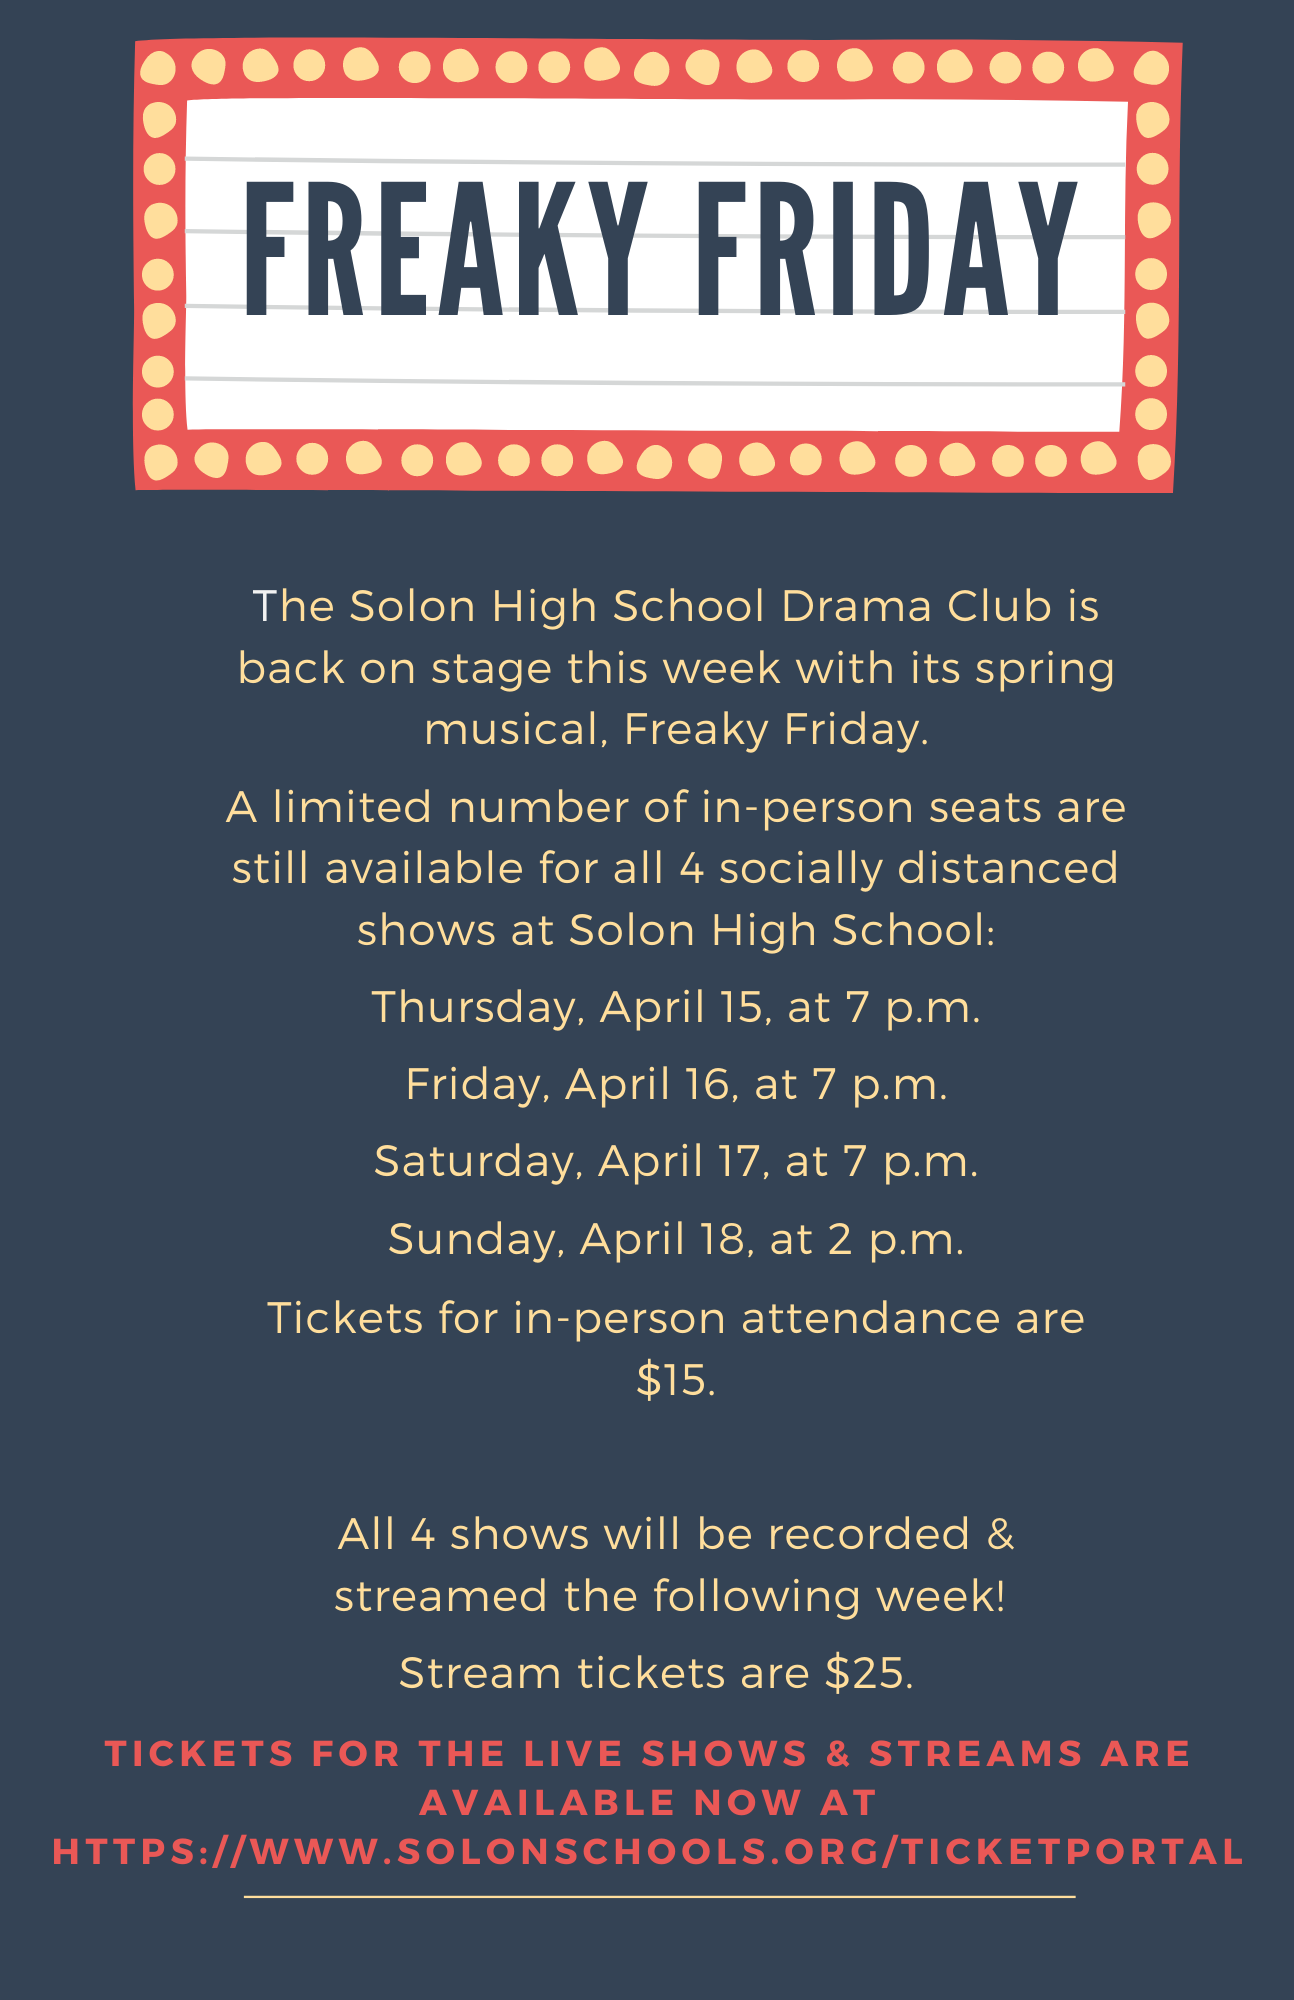 Solon High School Musical Freaky Friday Ticket information and show dates April 15-18